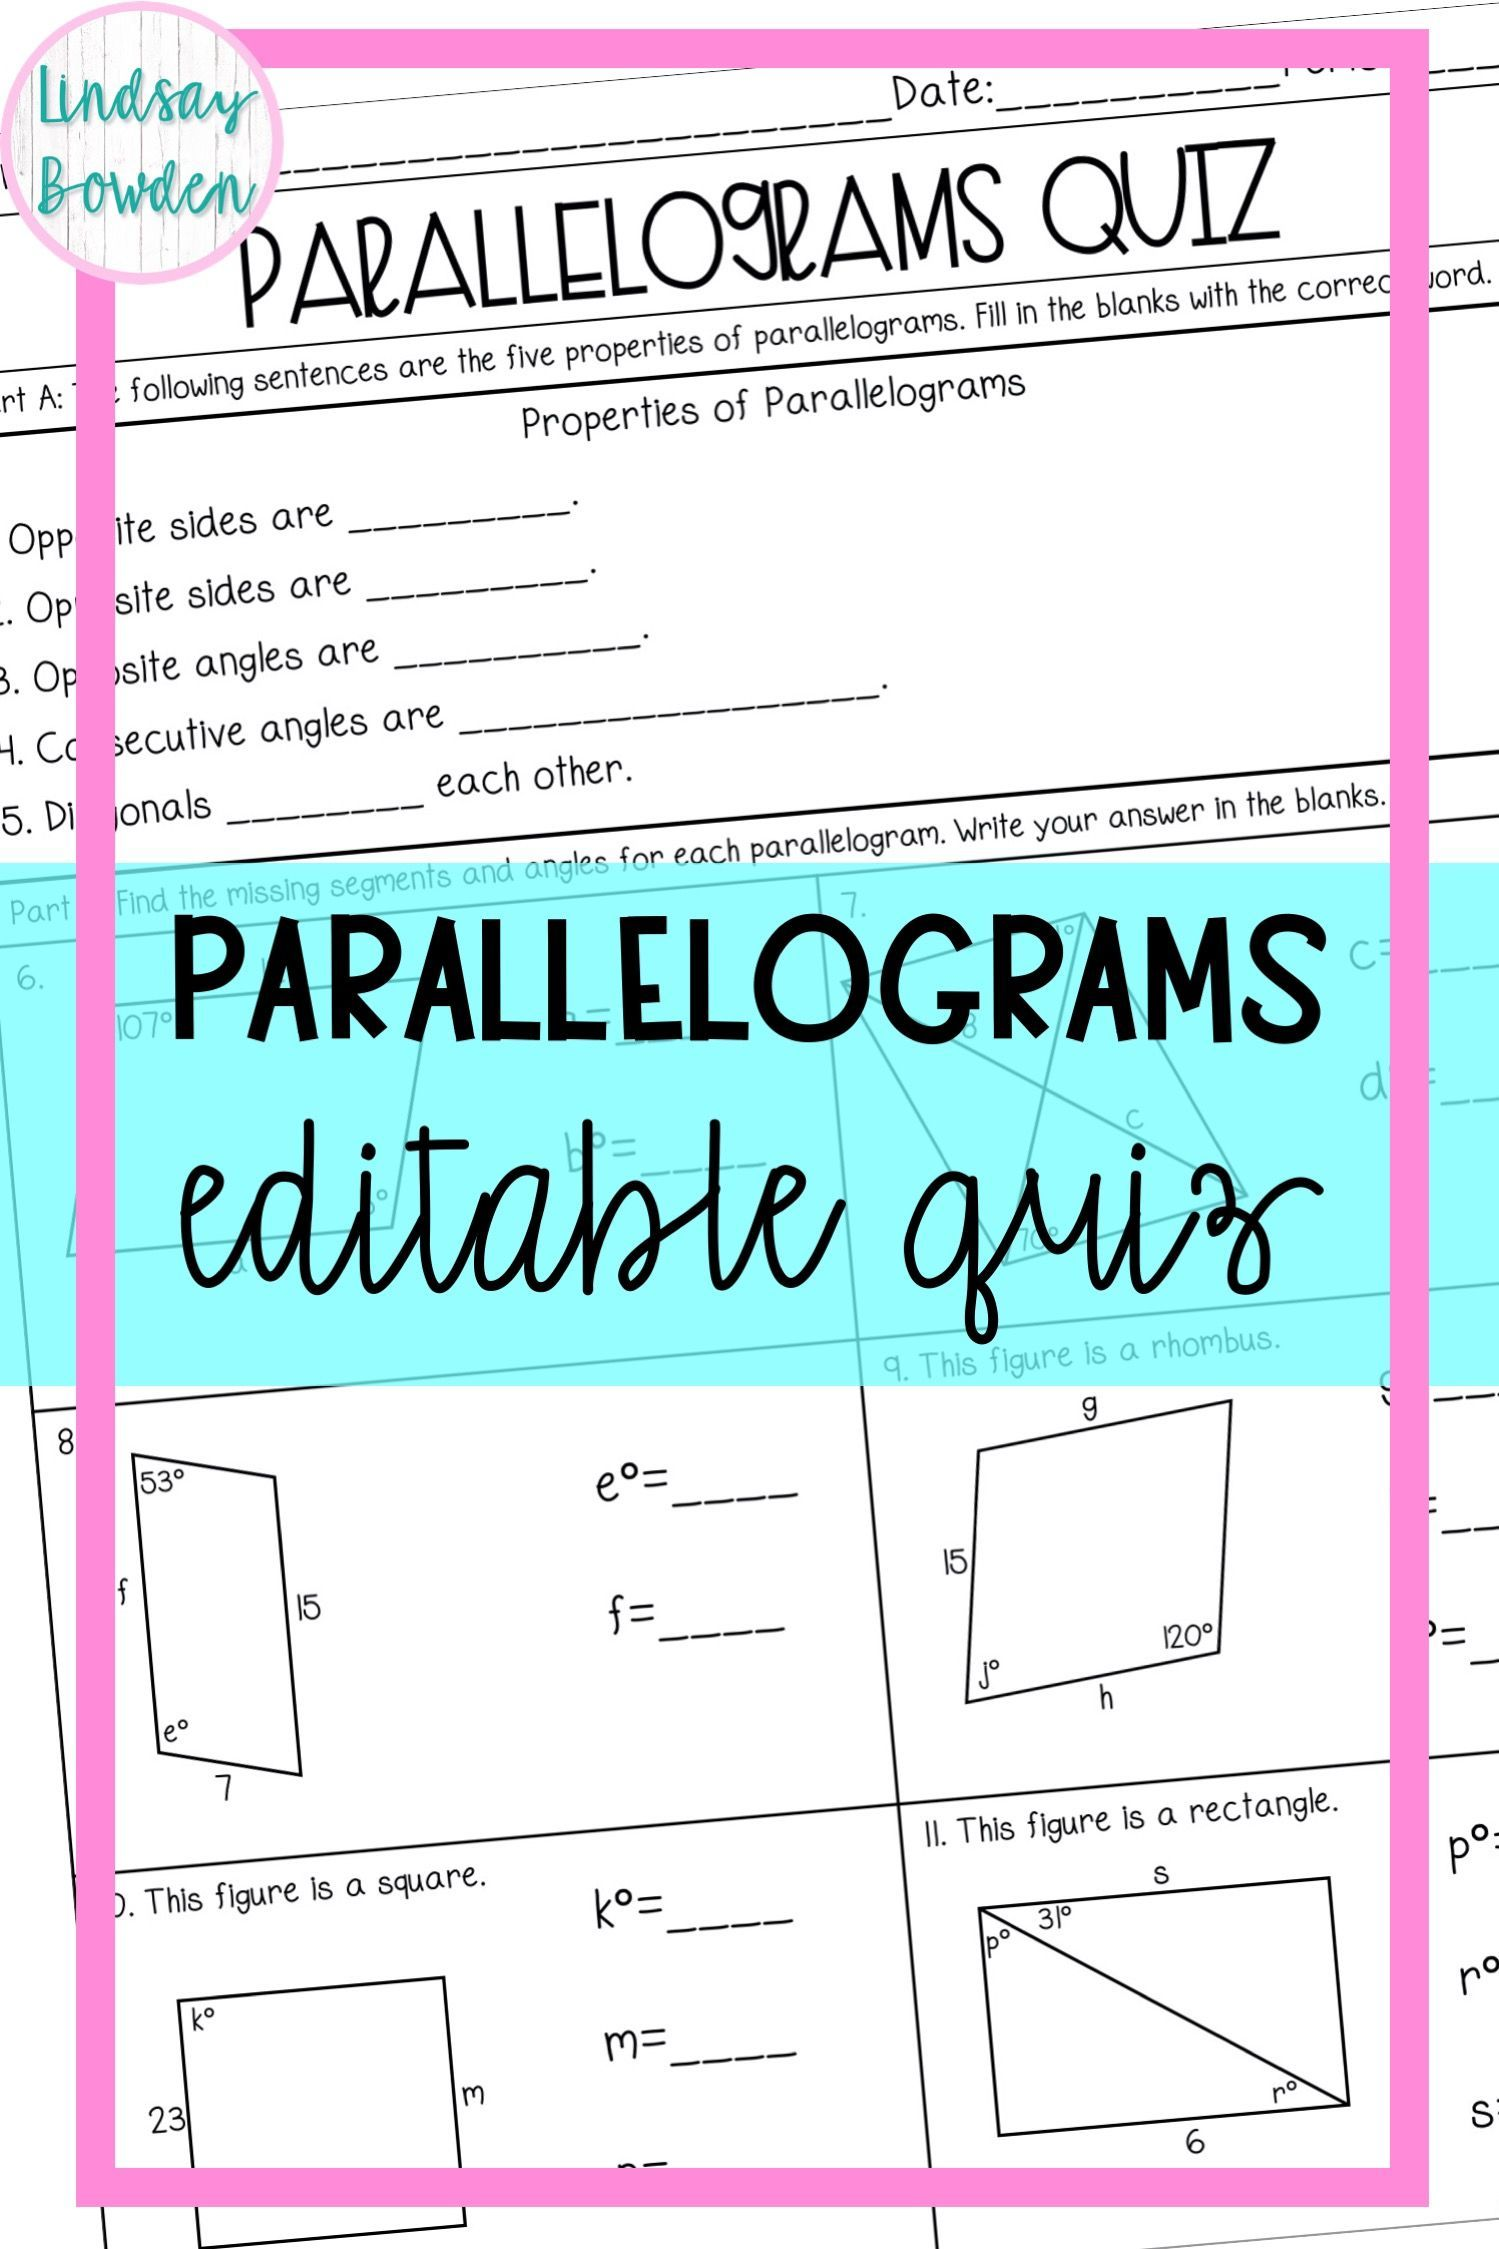 Parallelograms Quiz in 2020 Parallelogram, Math